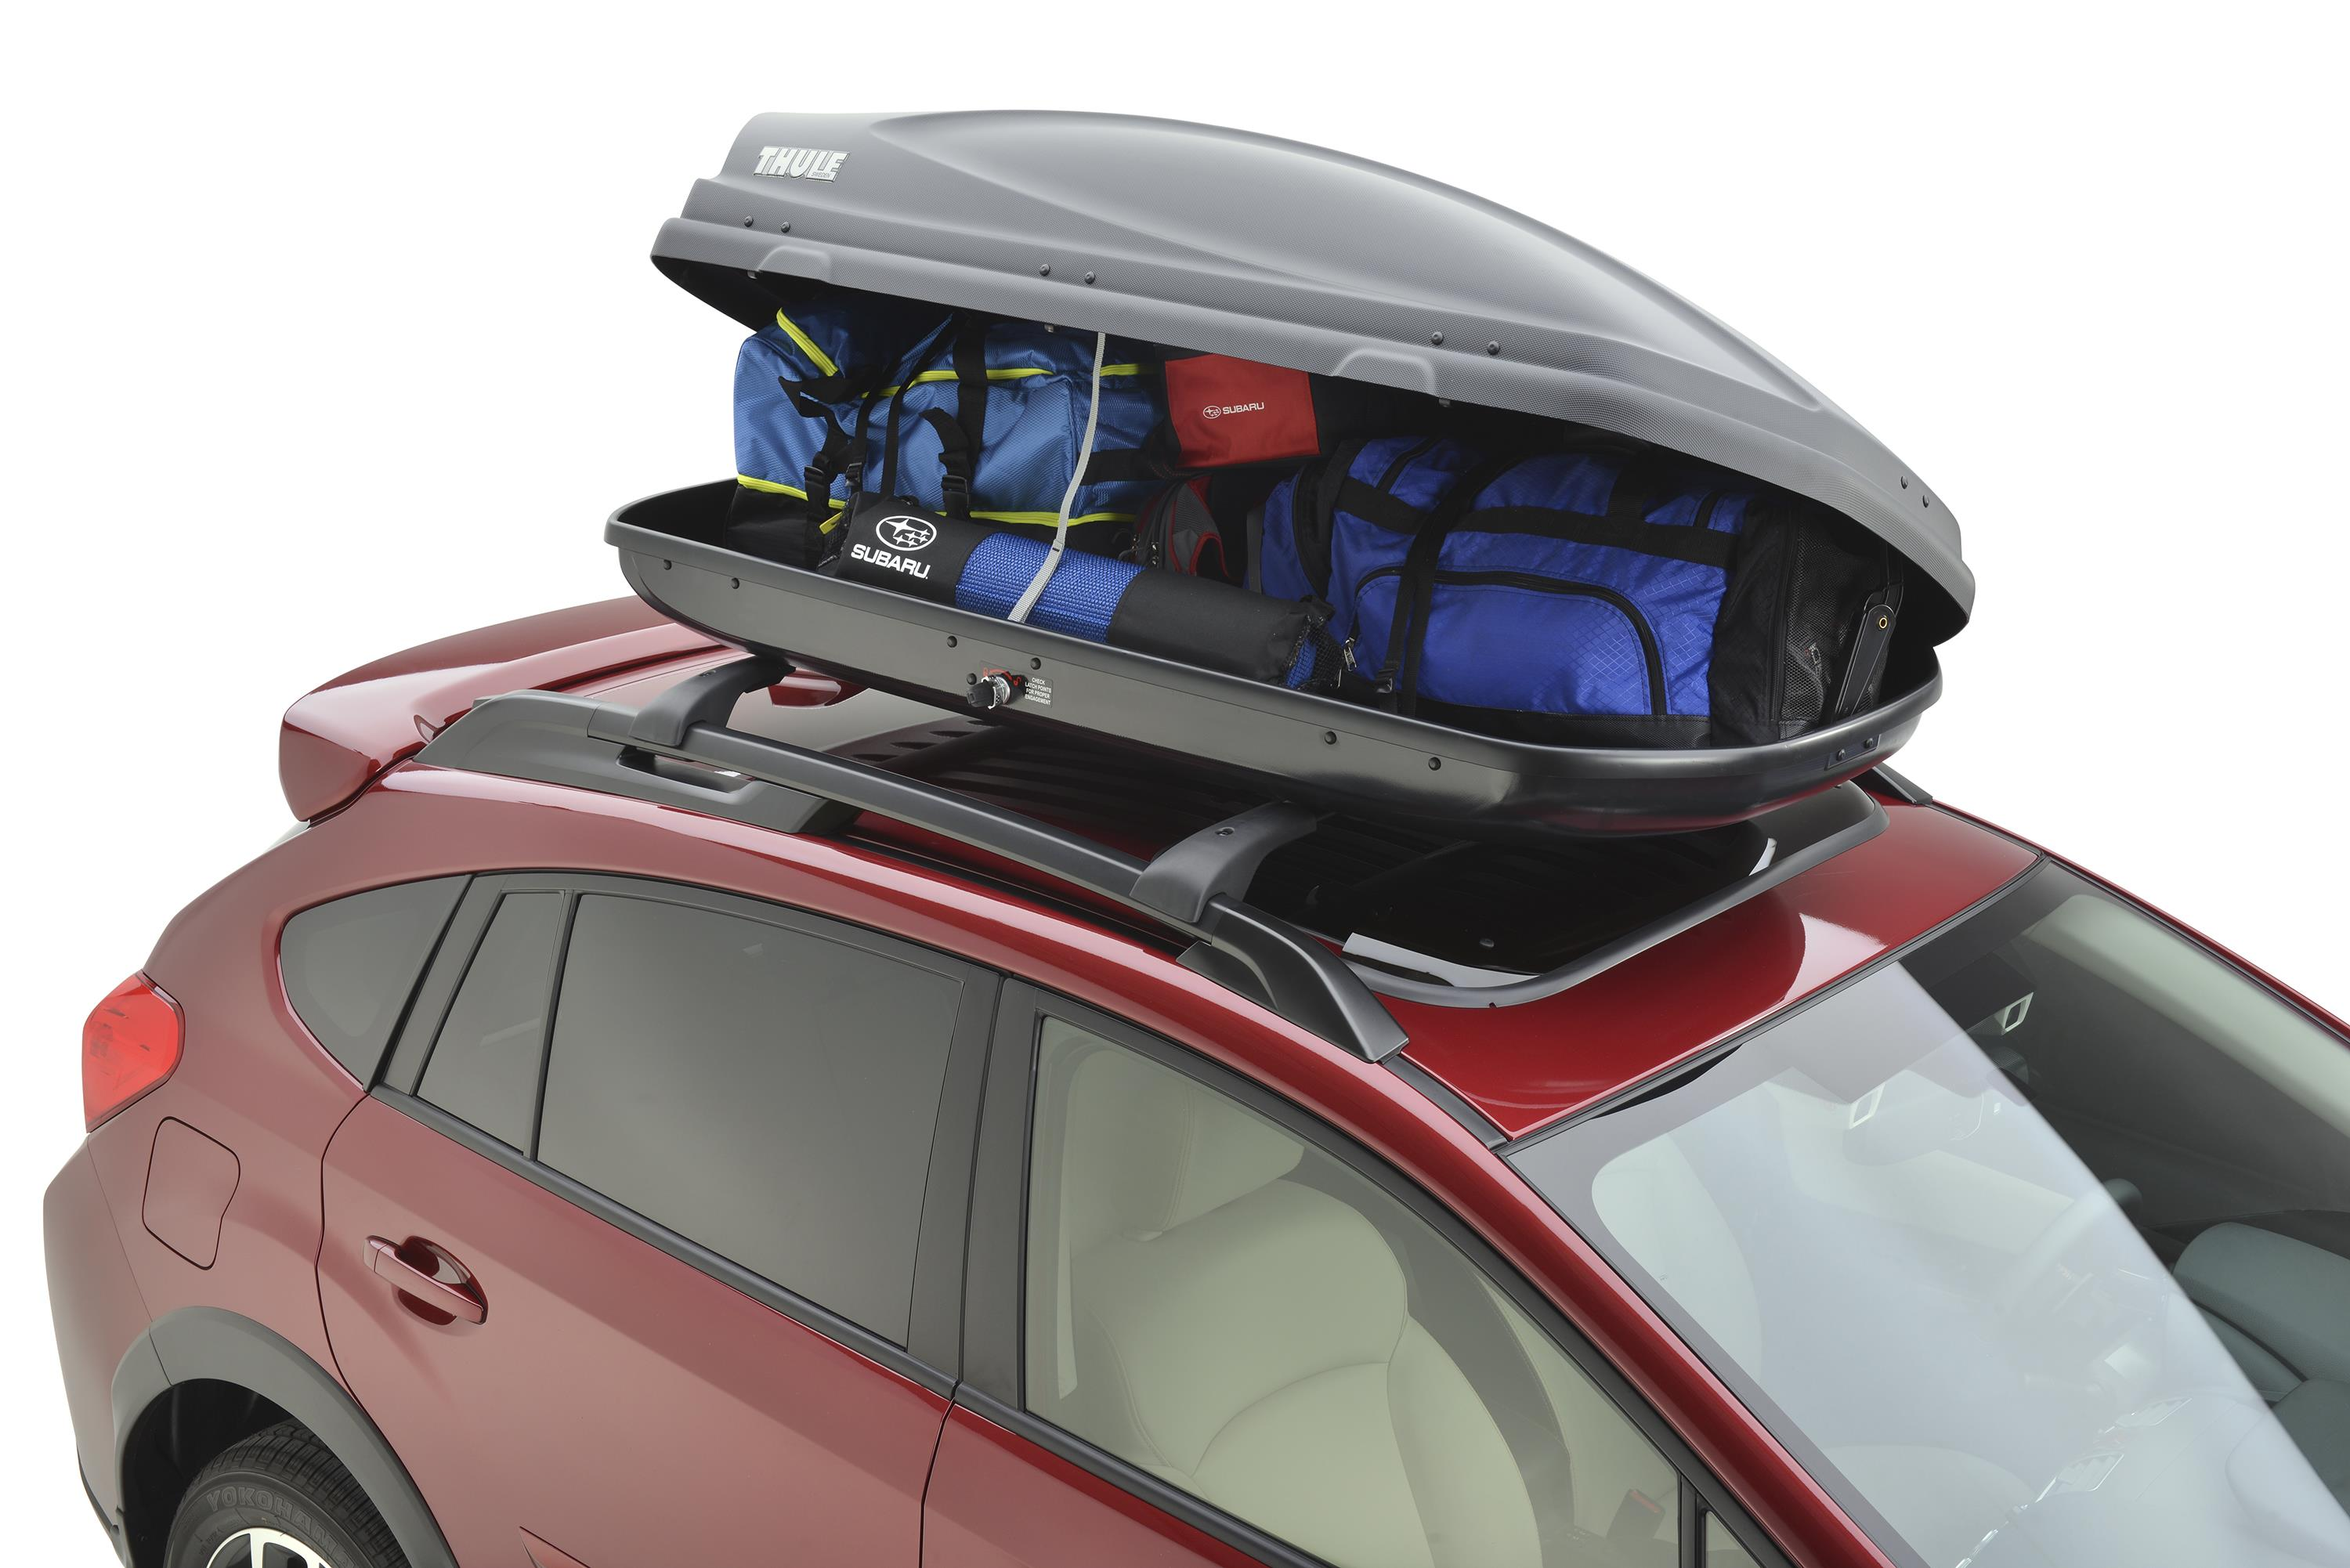 2016 Subaru Outback Roof Cargo Carrier Provides